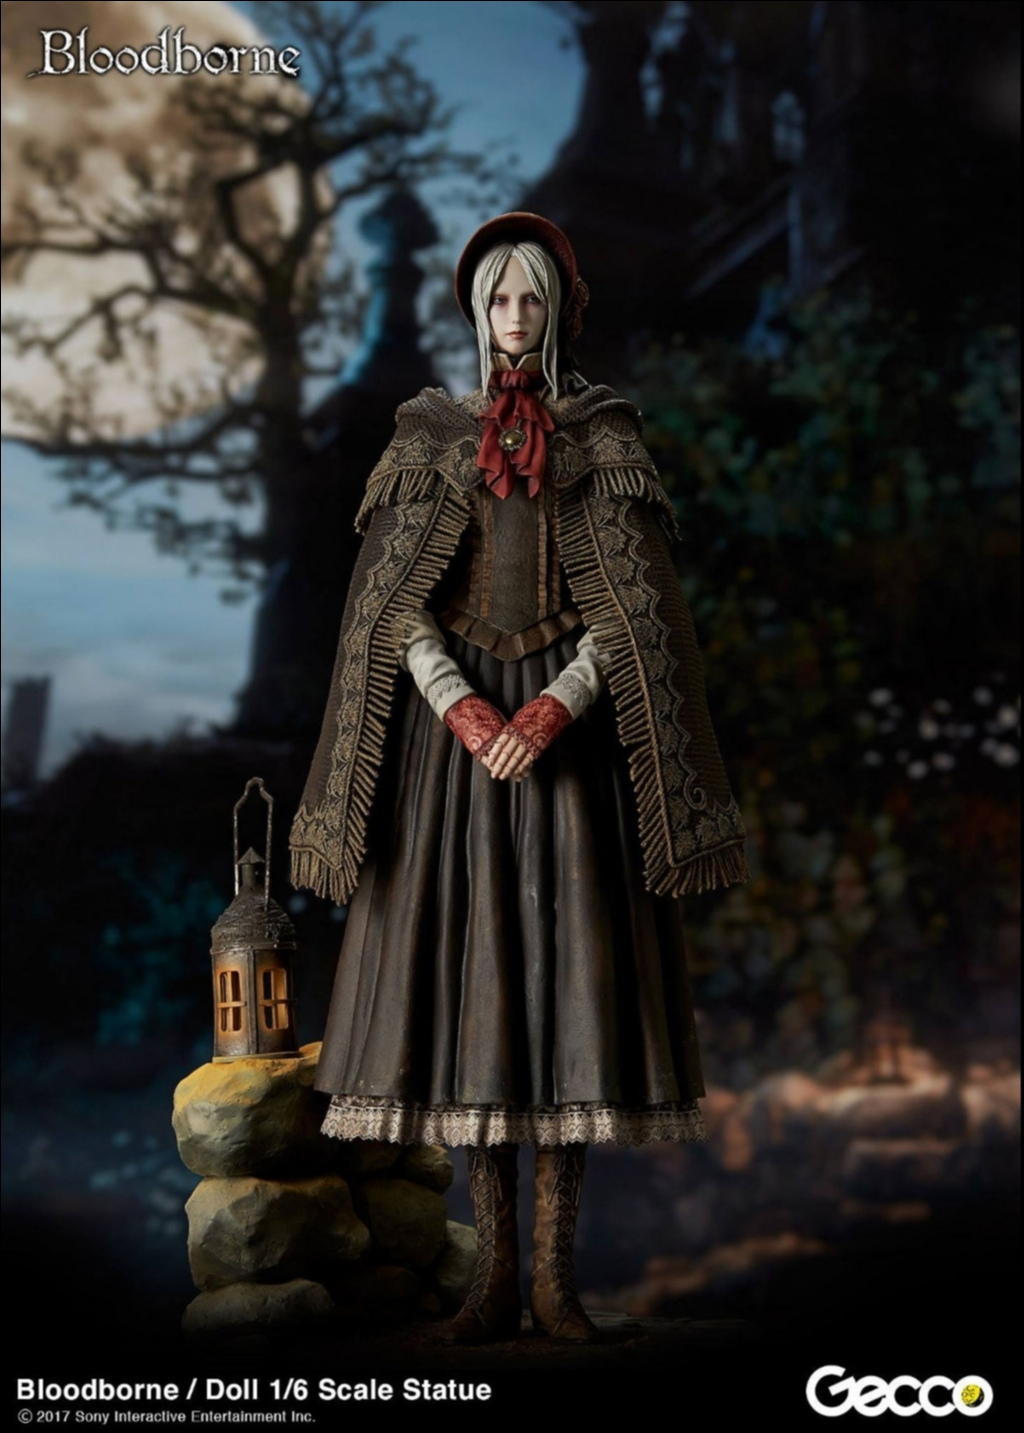 bloodborne-Doll-figure-statue-new-preorder-3-74-1499370761-49-1499371326.jpg